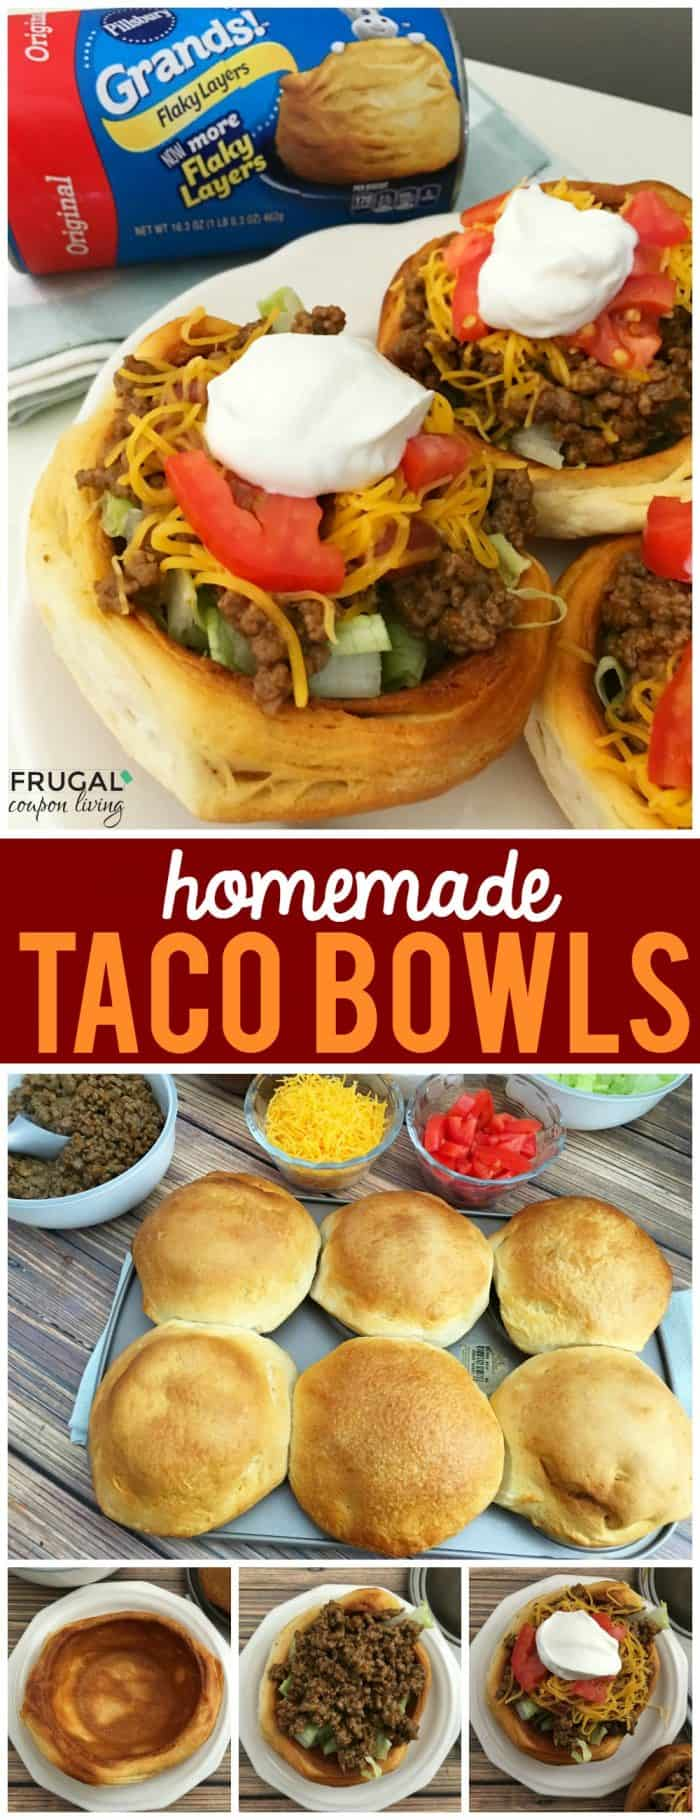 pillsbury-grands-homemade-taco-bowls-long-frugal-coupon-living